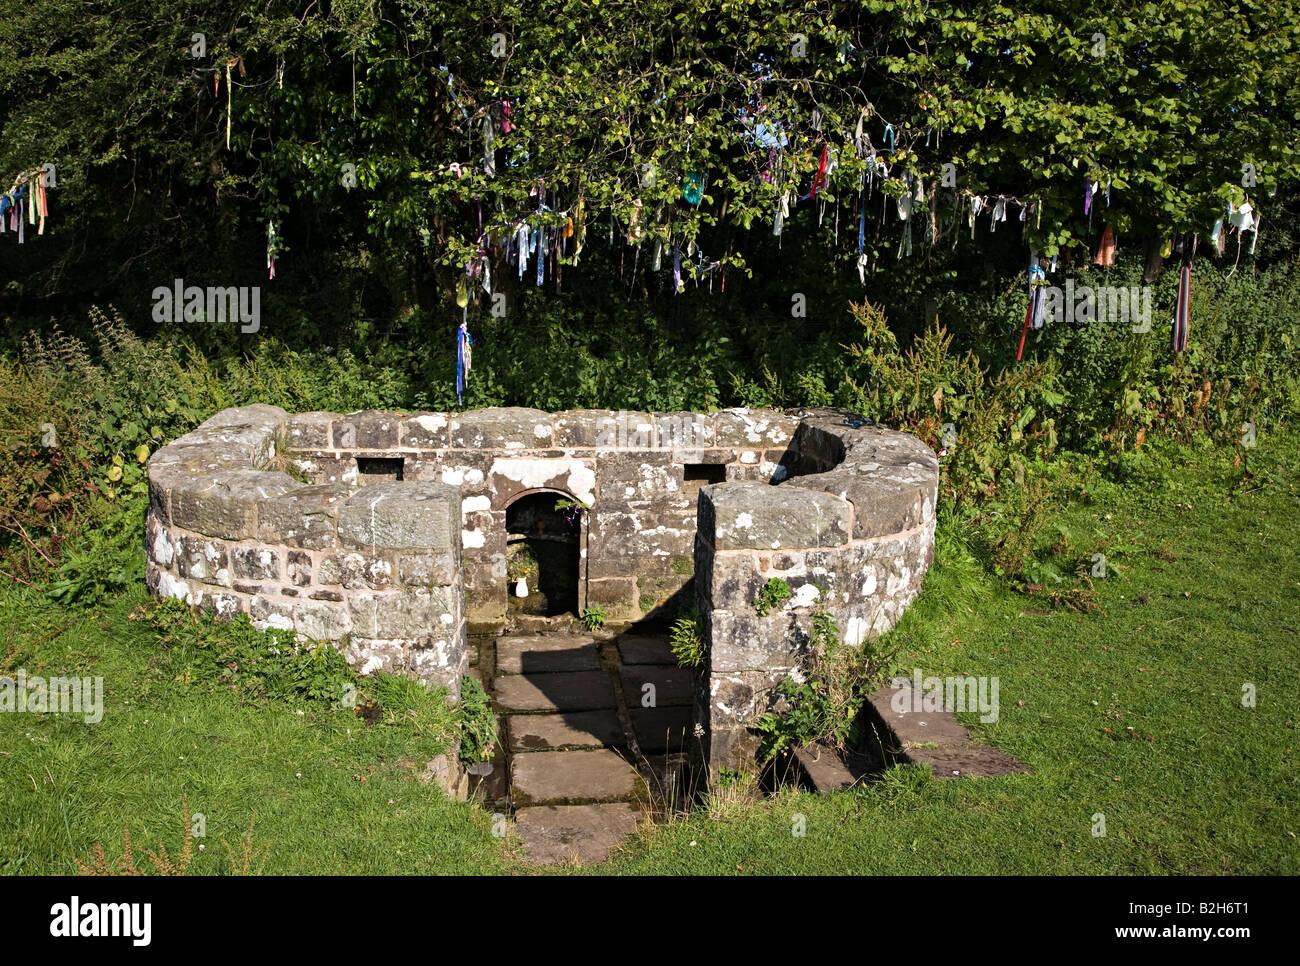 The Virtuous Well or St Anne's Well 17th century and still dressed with strips of coloured cloth Trellech Wales Stock Photo